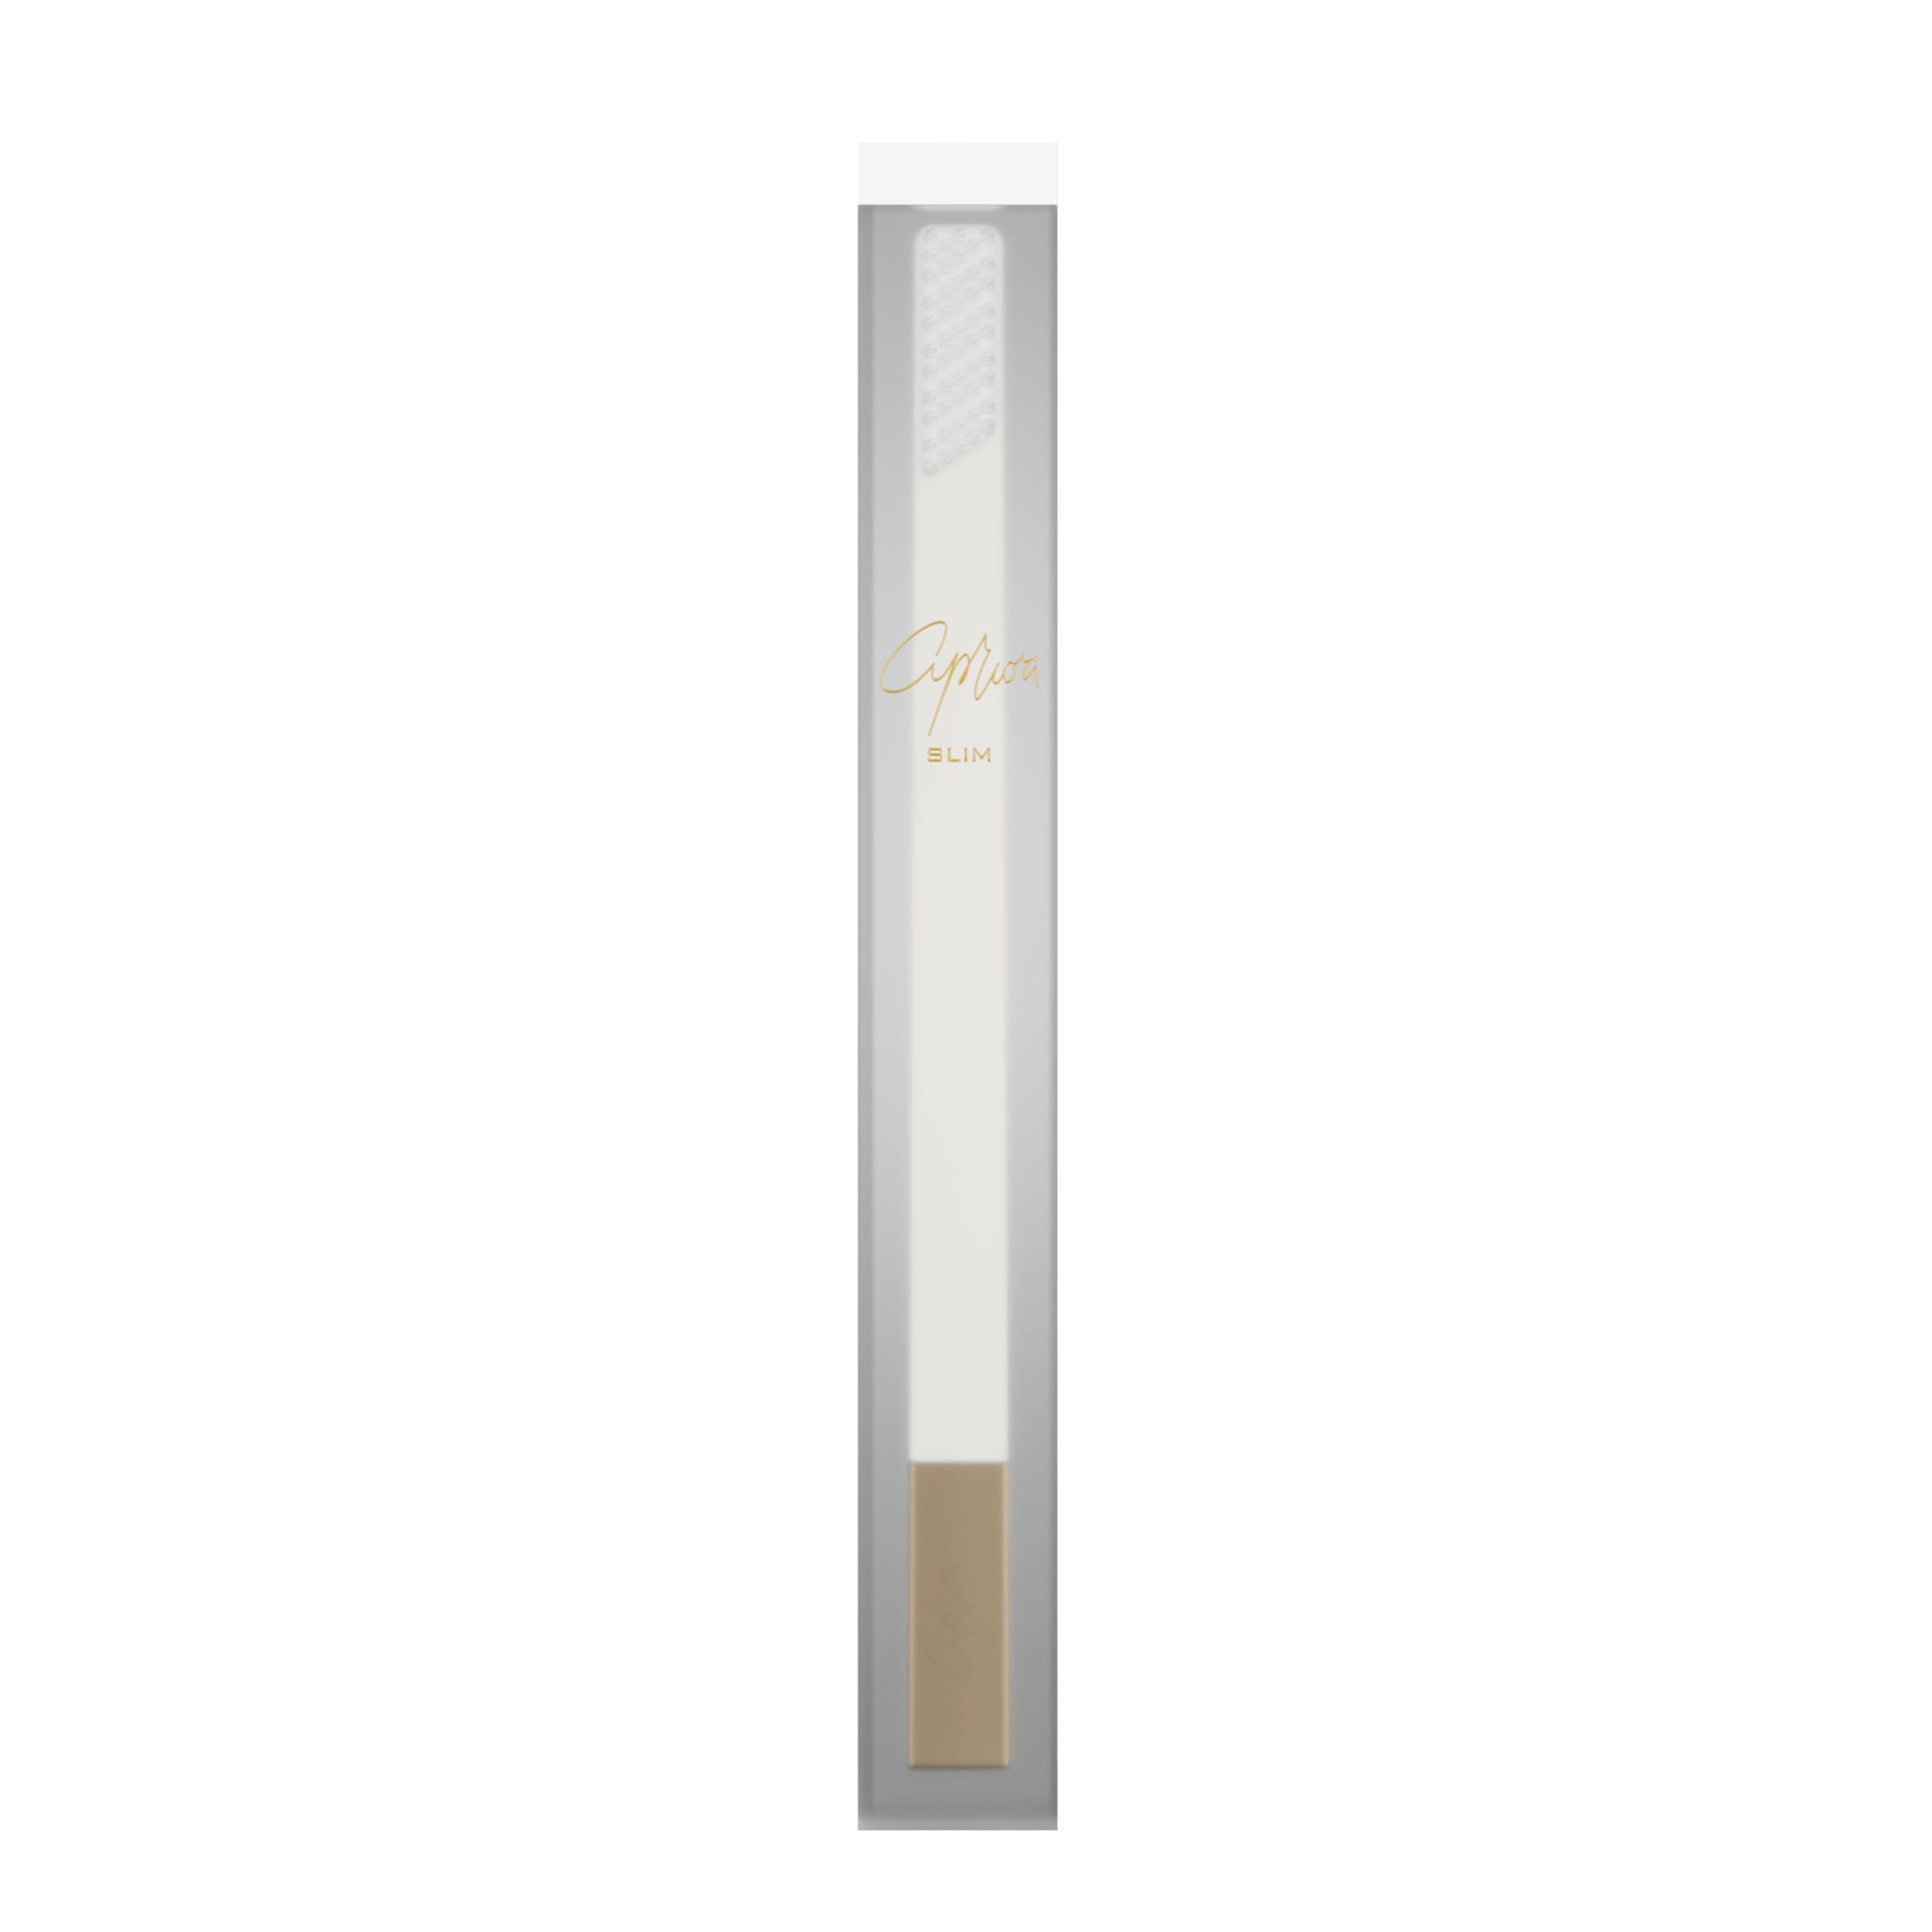 SLIM by Apriori white & gold disposable toothbrush package